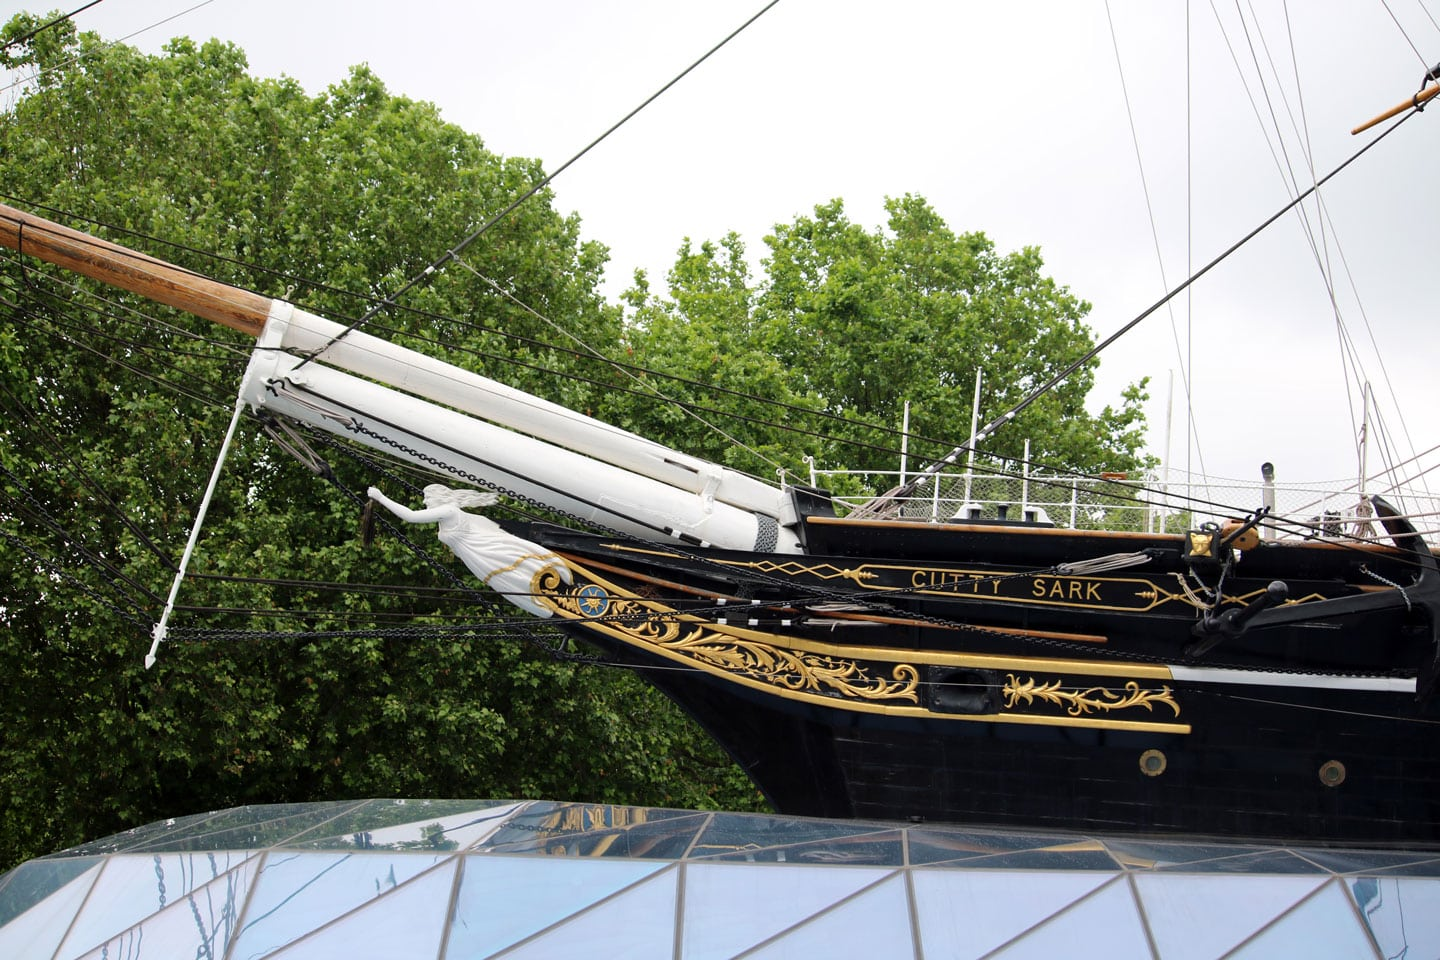 Cutty Sark, Royal Borough of Greenwich | Viscount Cruises